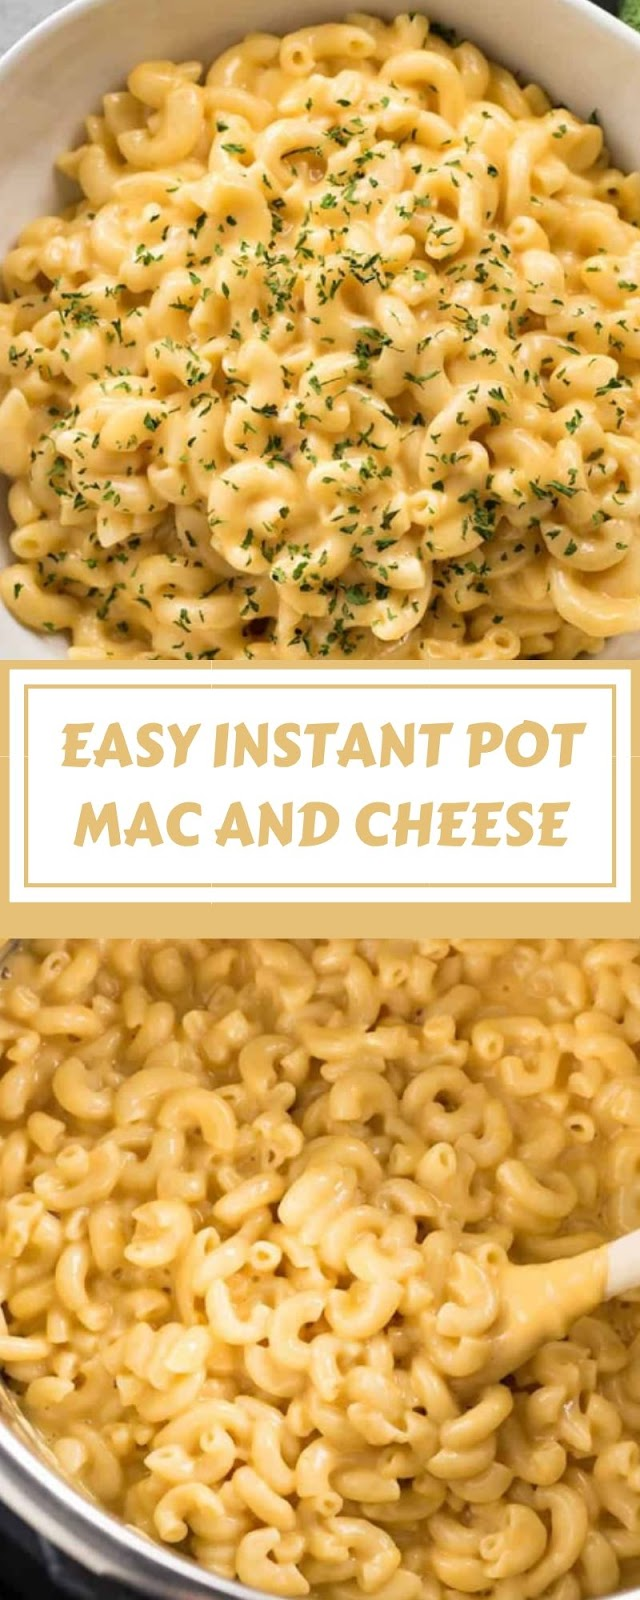 EASY INSTANT POT MAC AND CHEESE